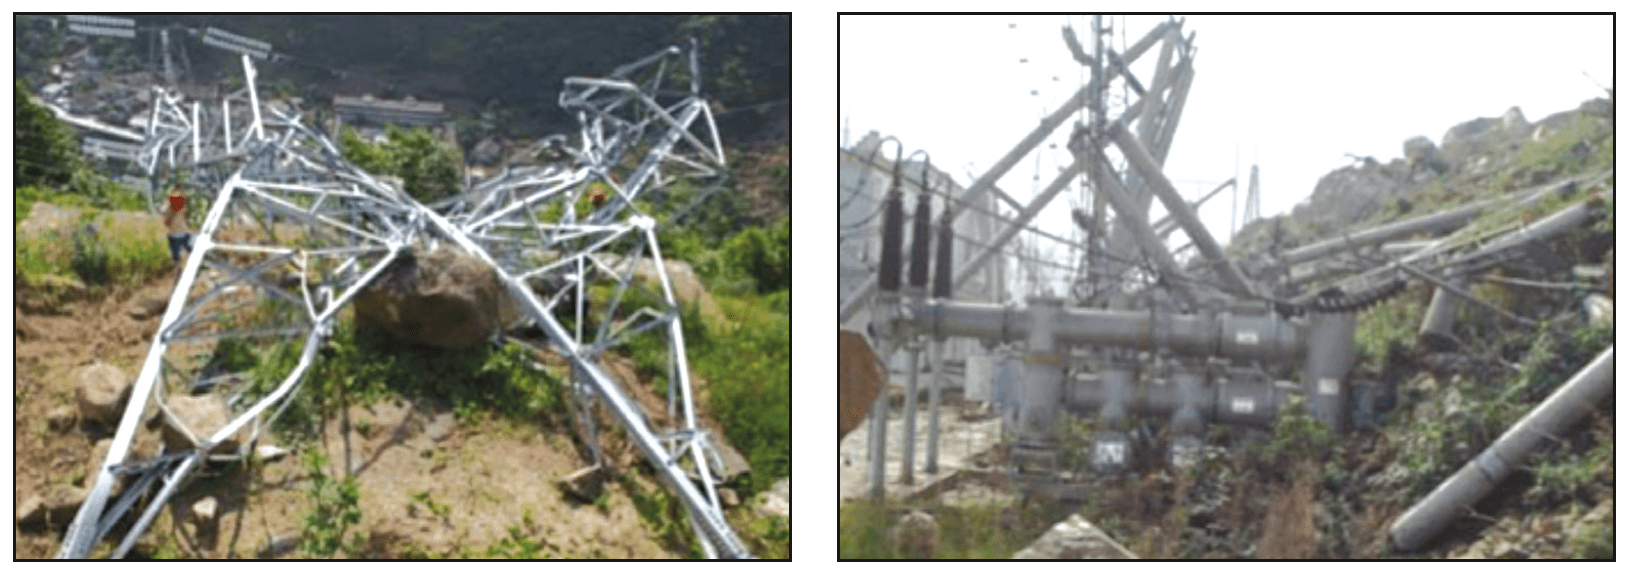 Examples of damage to power infrastructure and equipment due to earthquake. bushing Development of Bushings for Seismic Conditions Examples of damage to power infrastructure and equipment due to earthquake